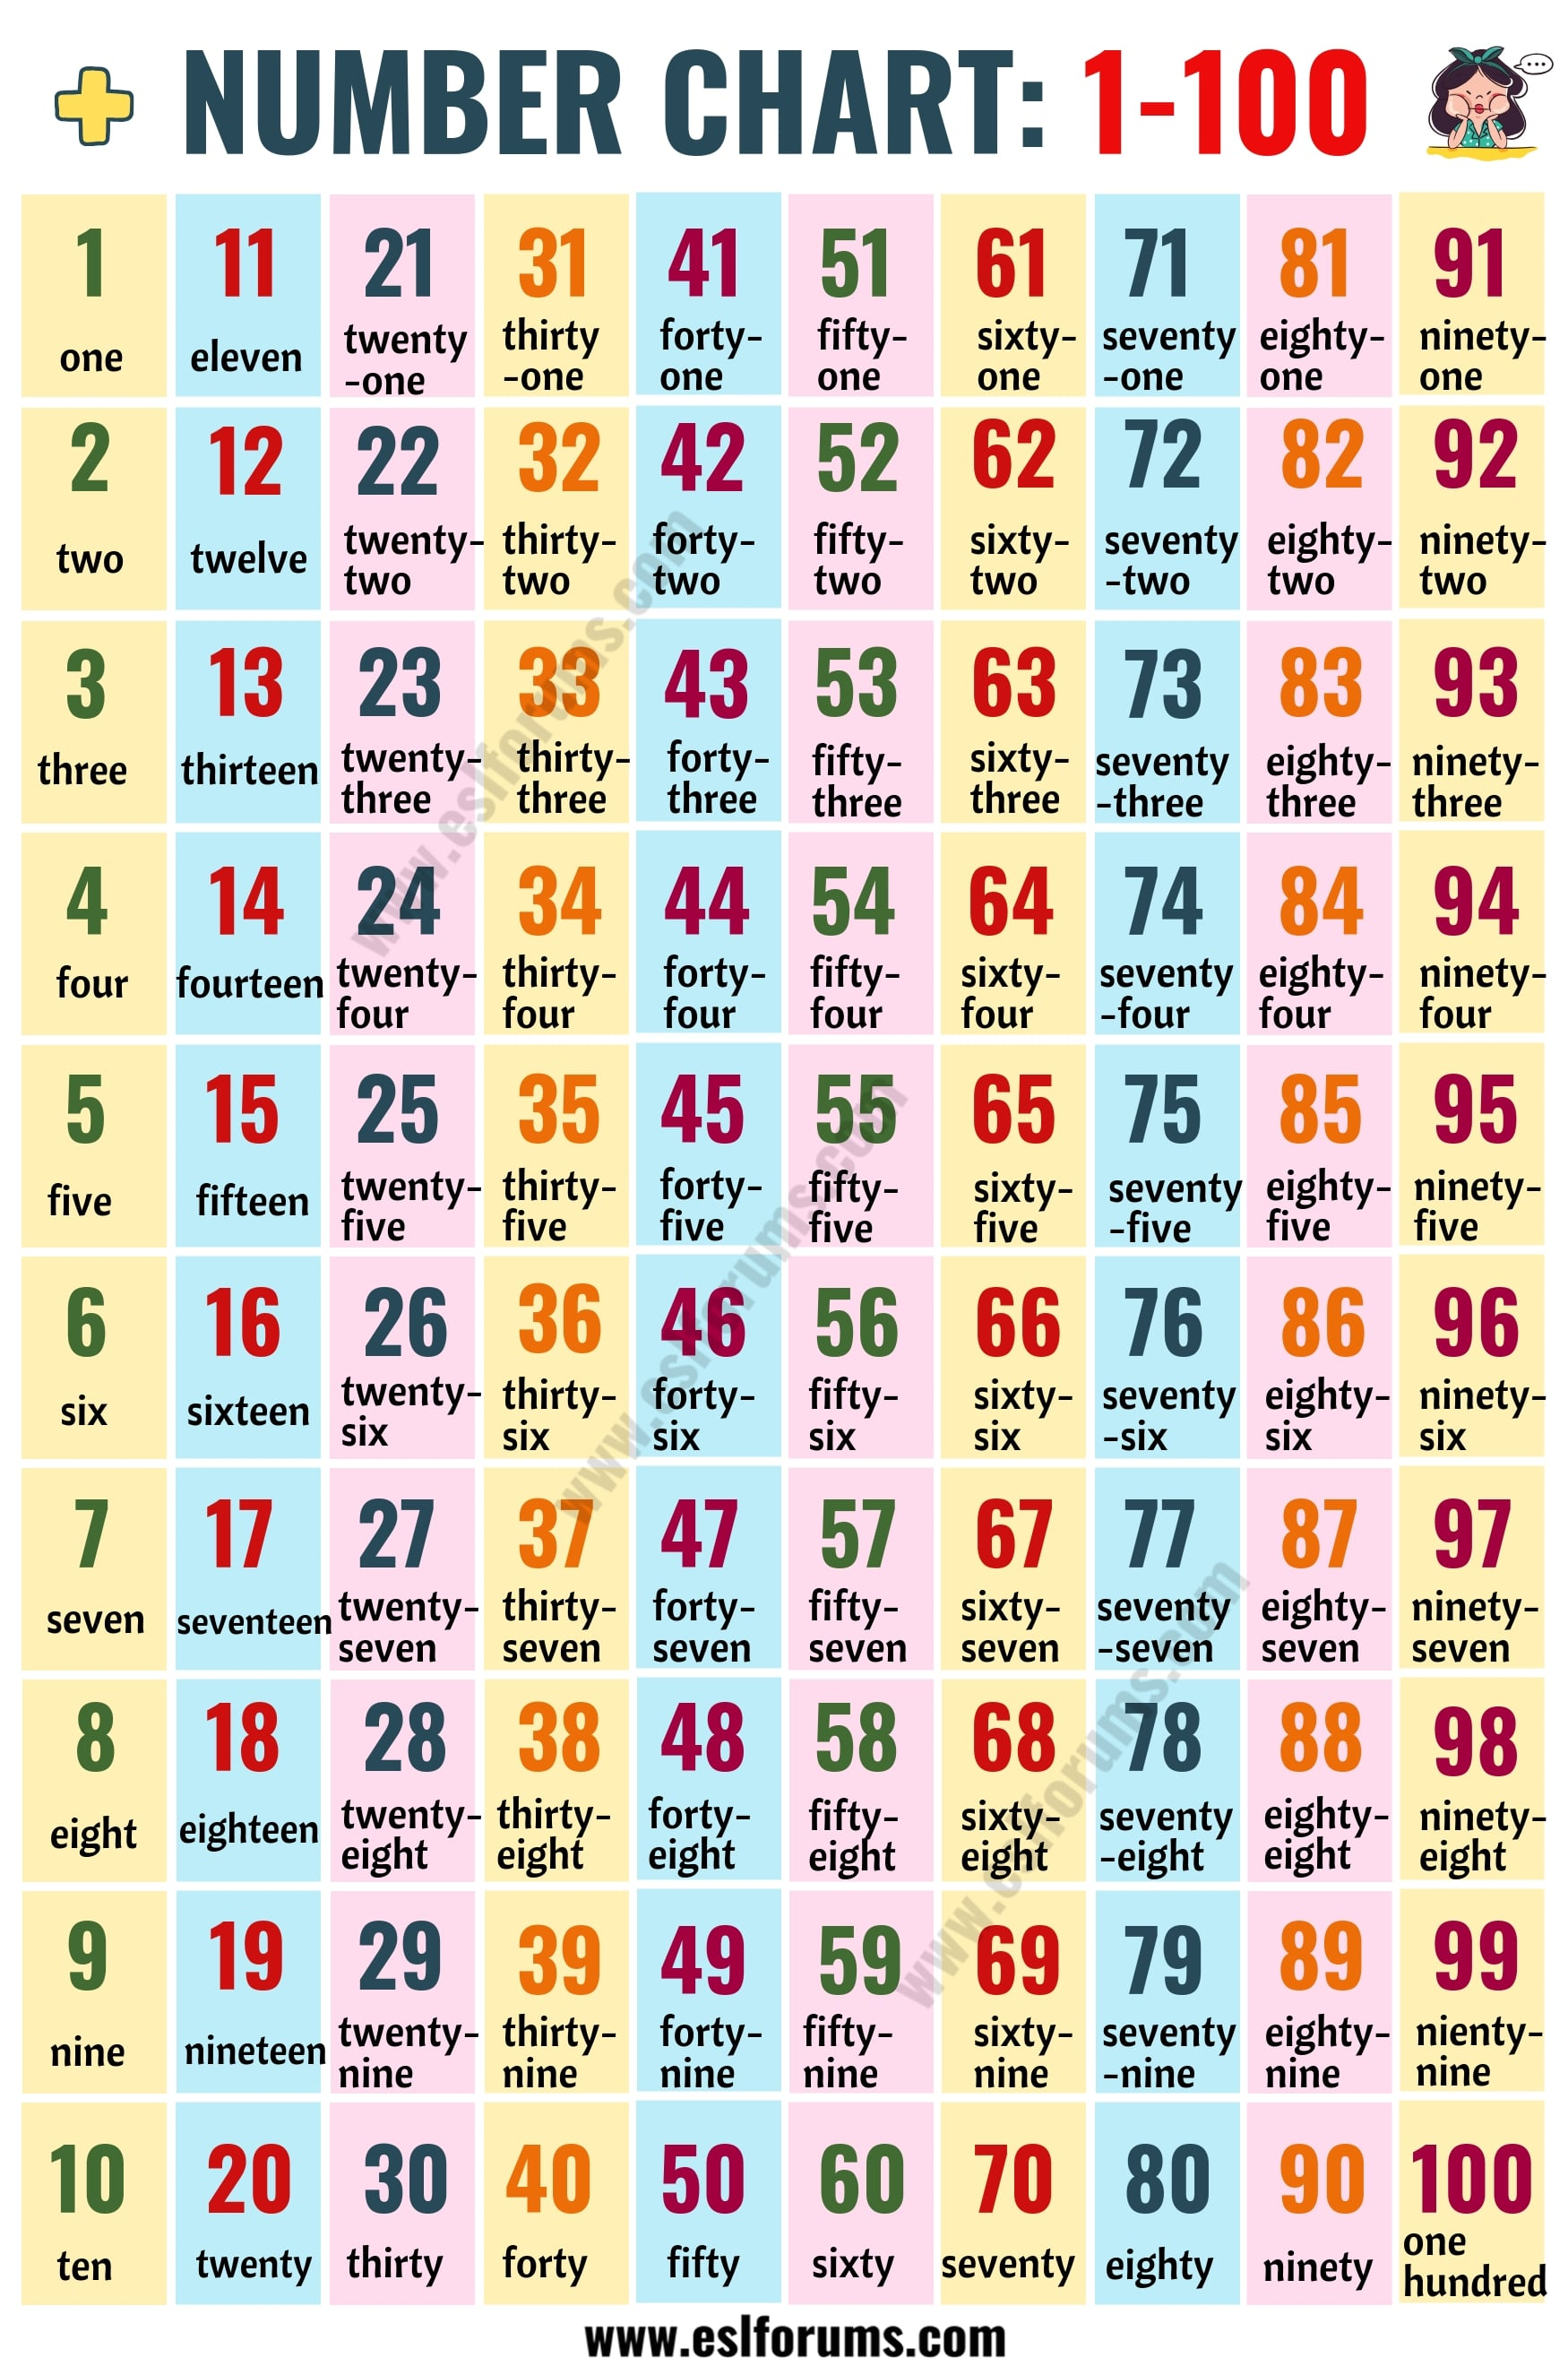 Hundreds Chart: Number Chart 1-100 in English